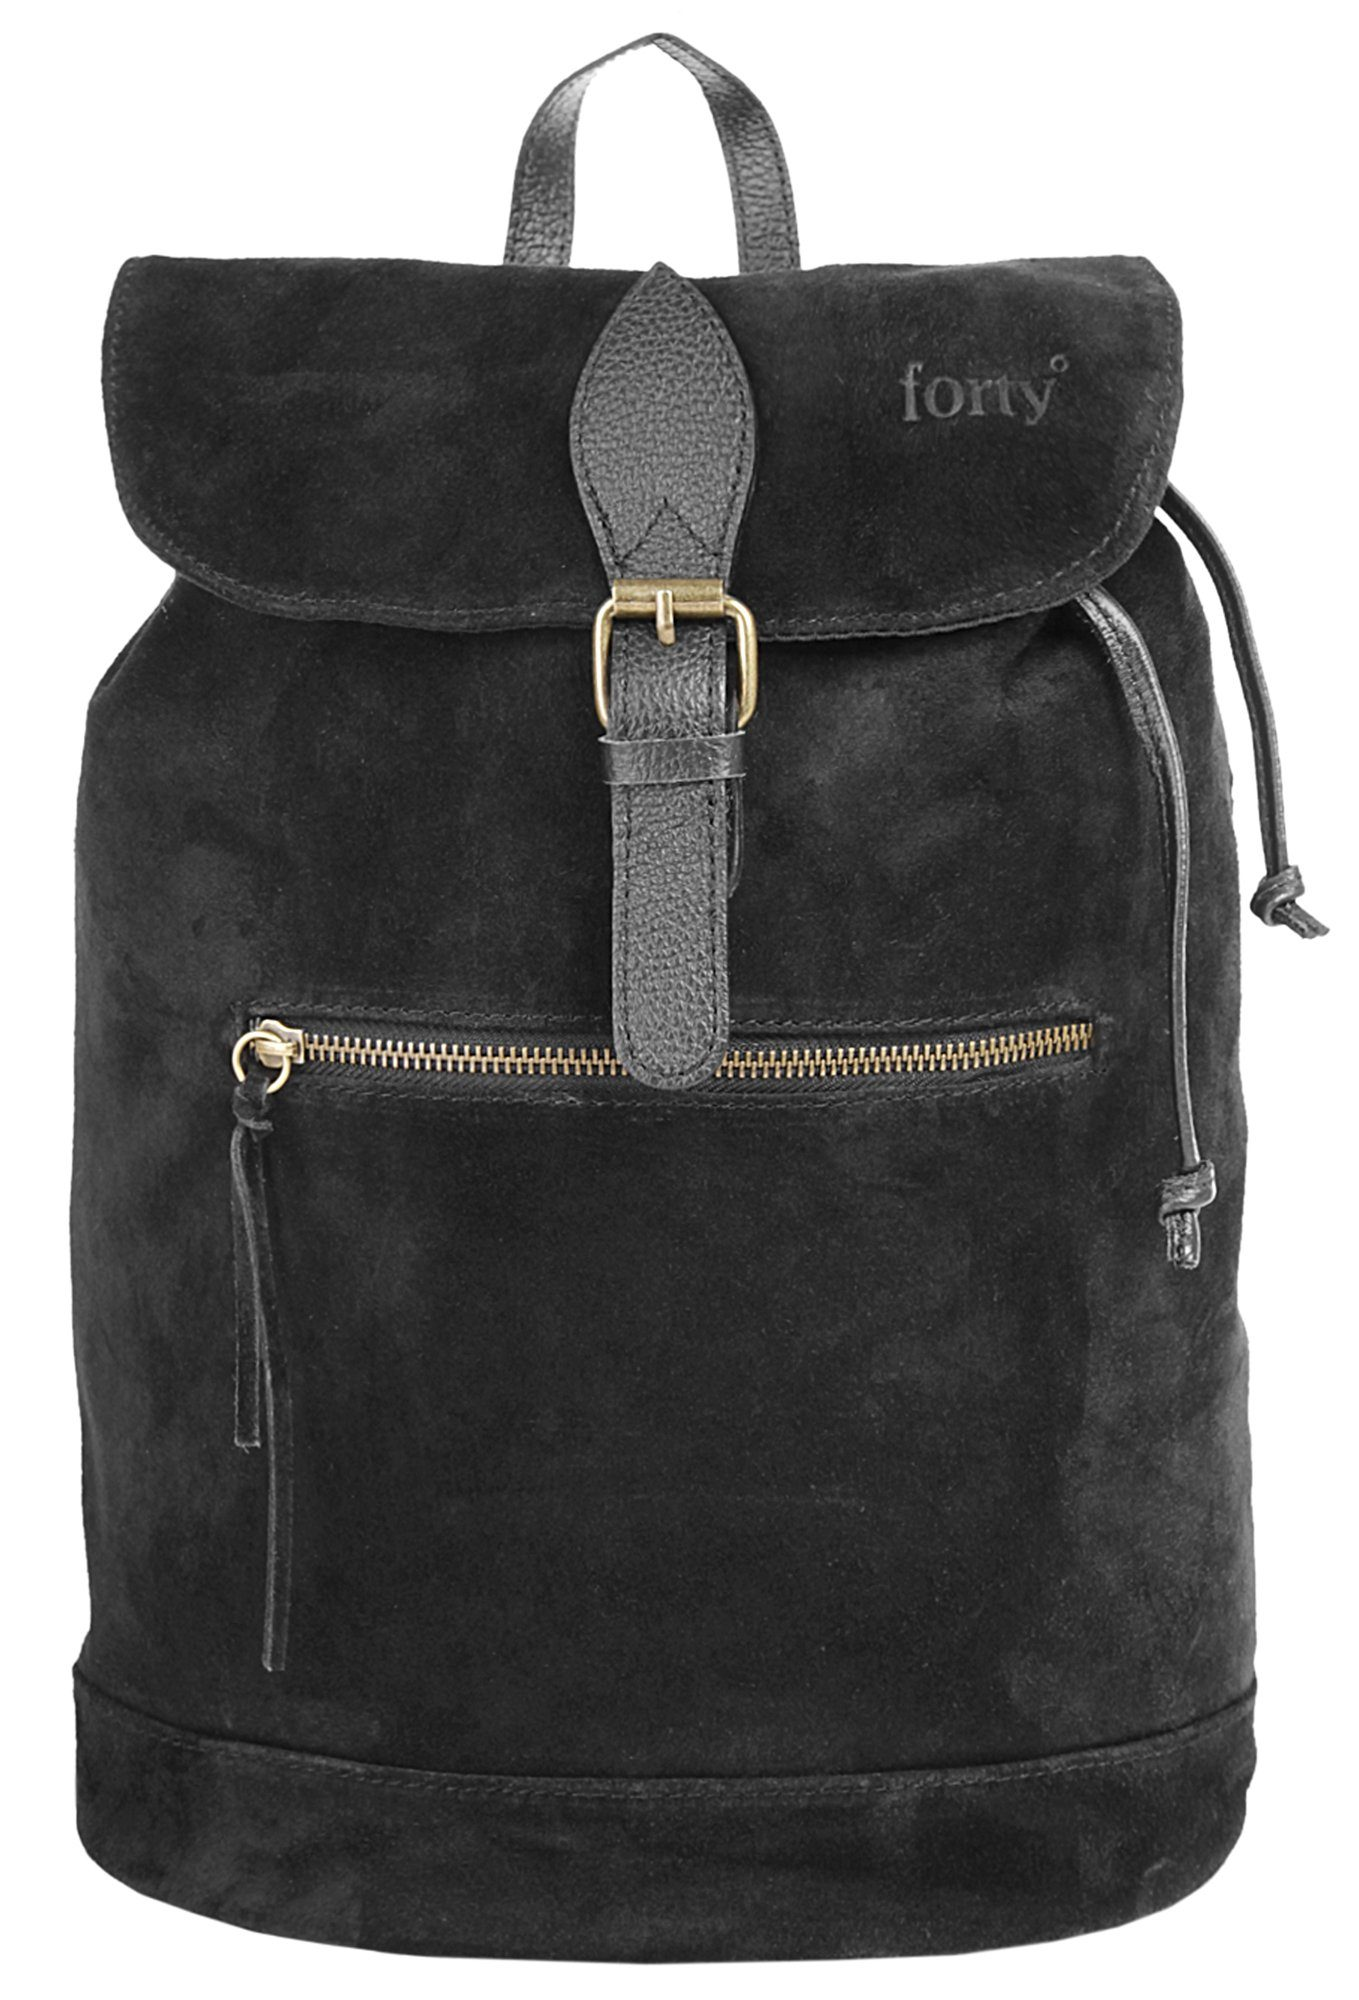 Forty degrees Rucksack